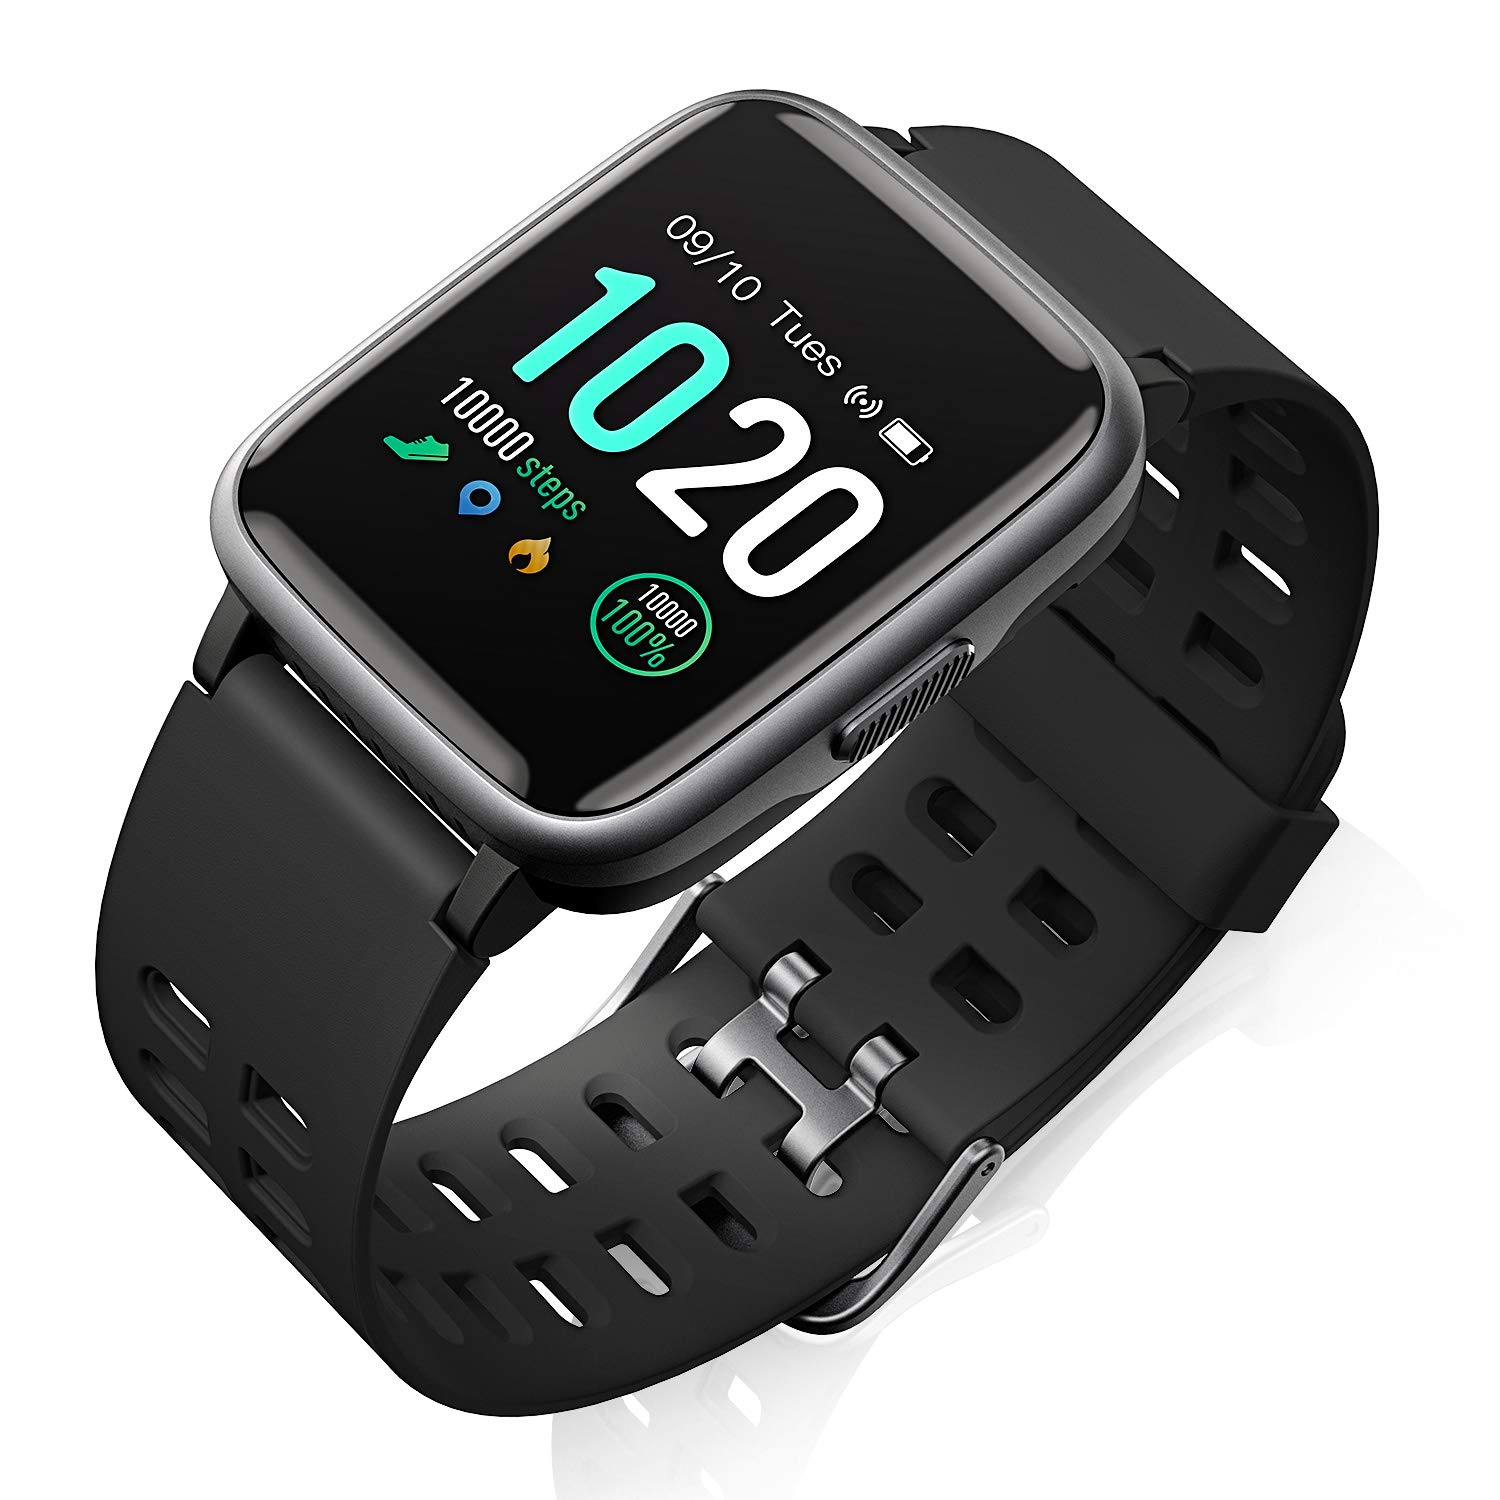 Fitness Smart Watch HR Activity Tracker Watch - 1.3'' Touch ScreenWaterproof Watch for Android iOS Phone with Heart Rate Monitor, Pedometer, Sleep Monitor, Calorie Counter for Kids, Women and Men by FITFORT